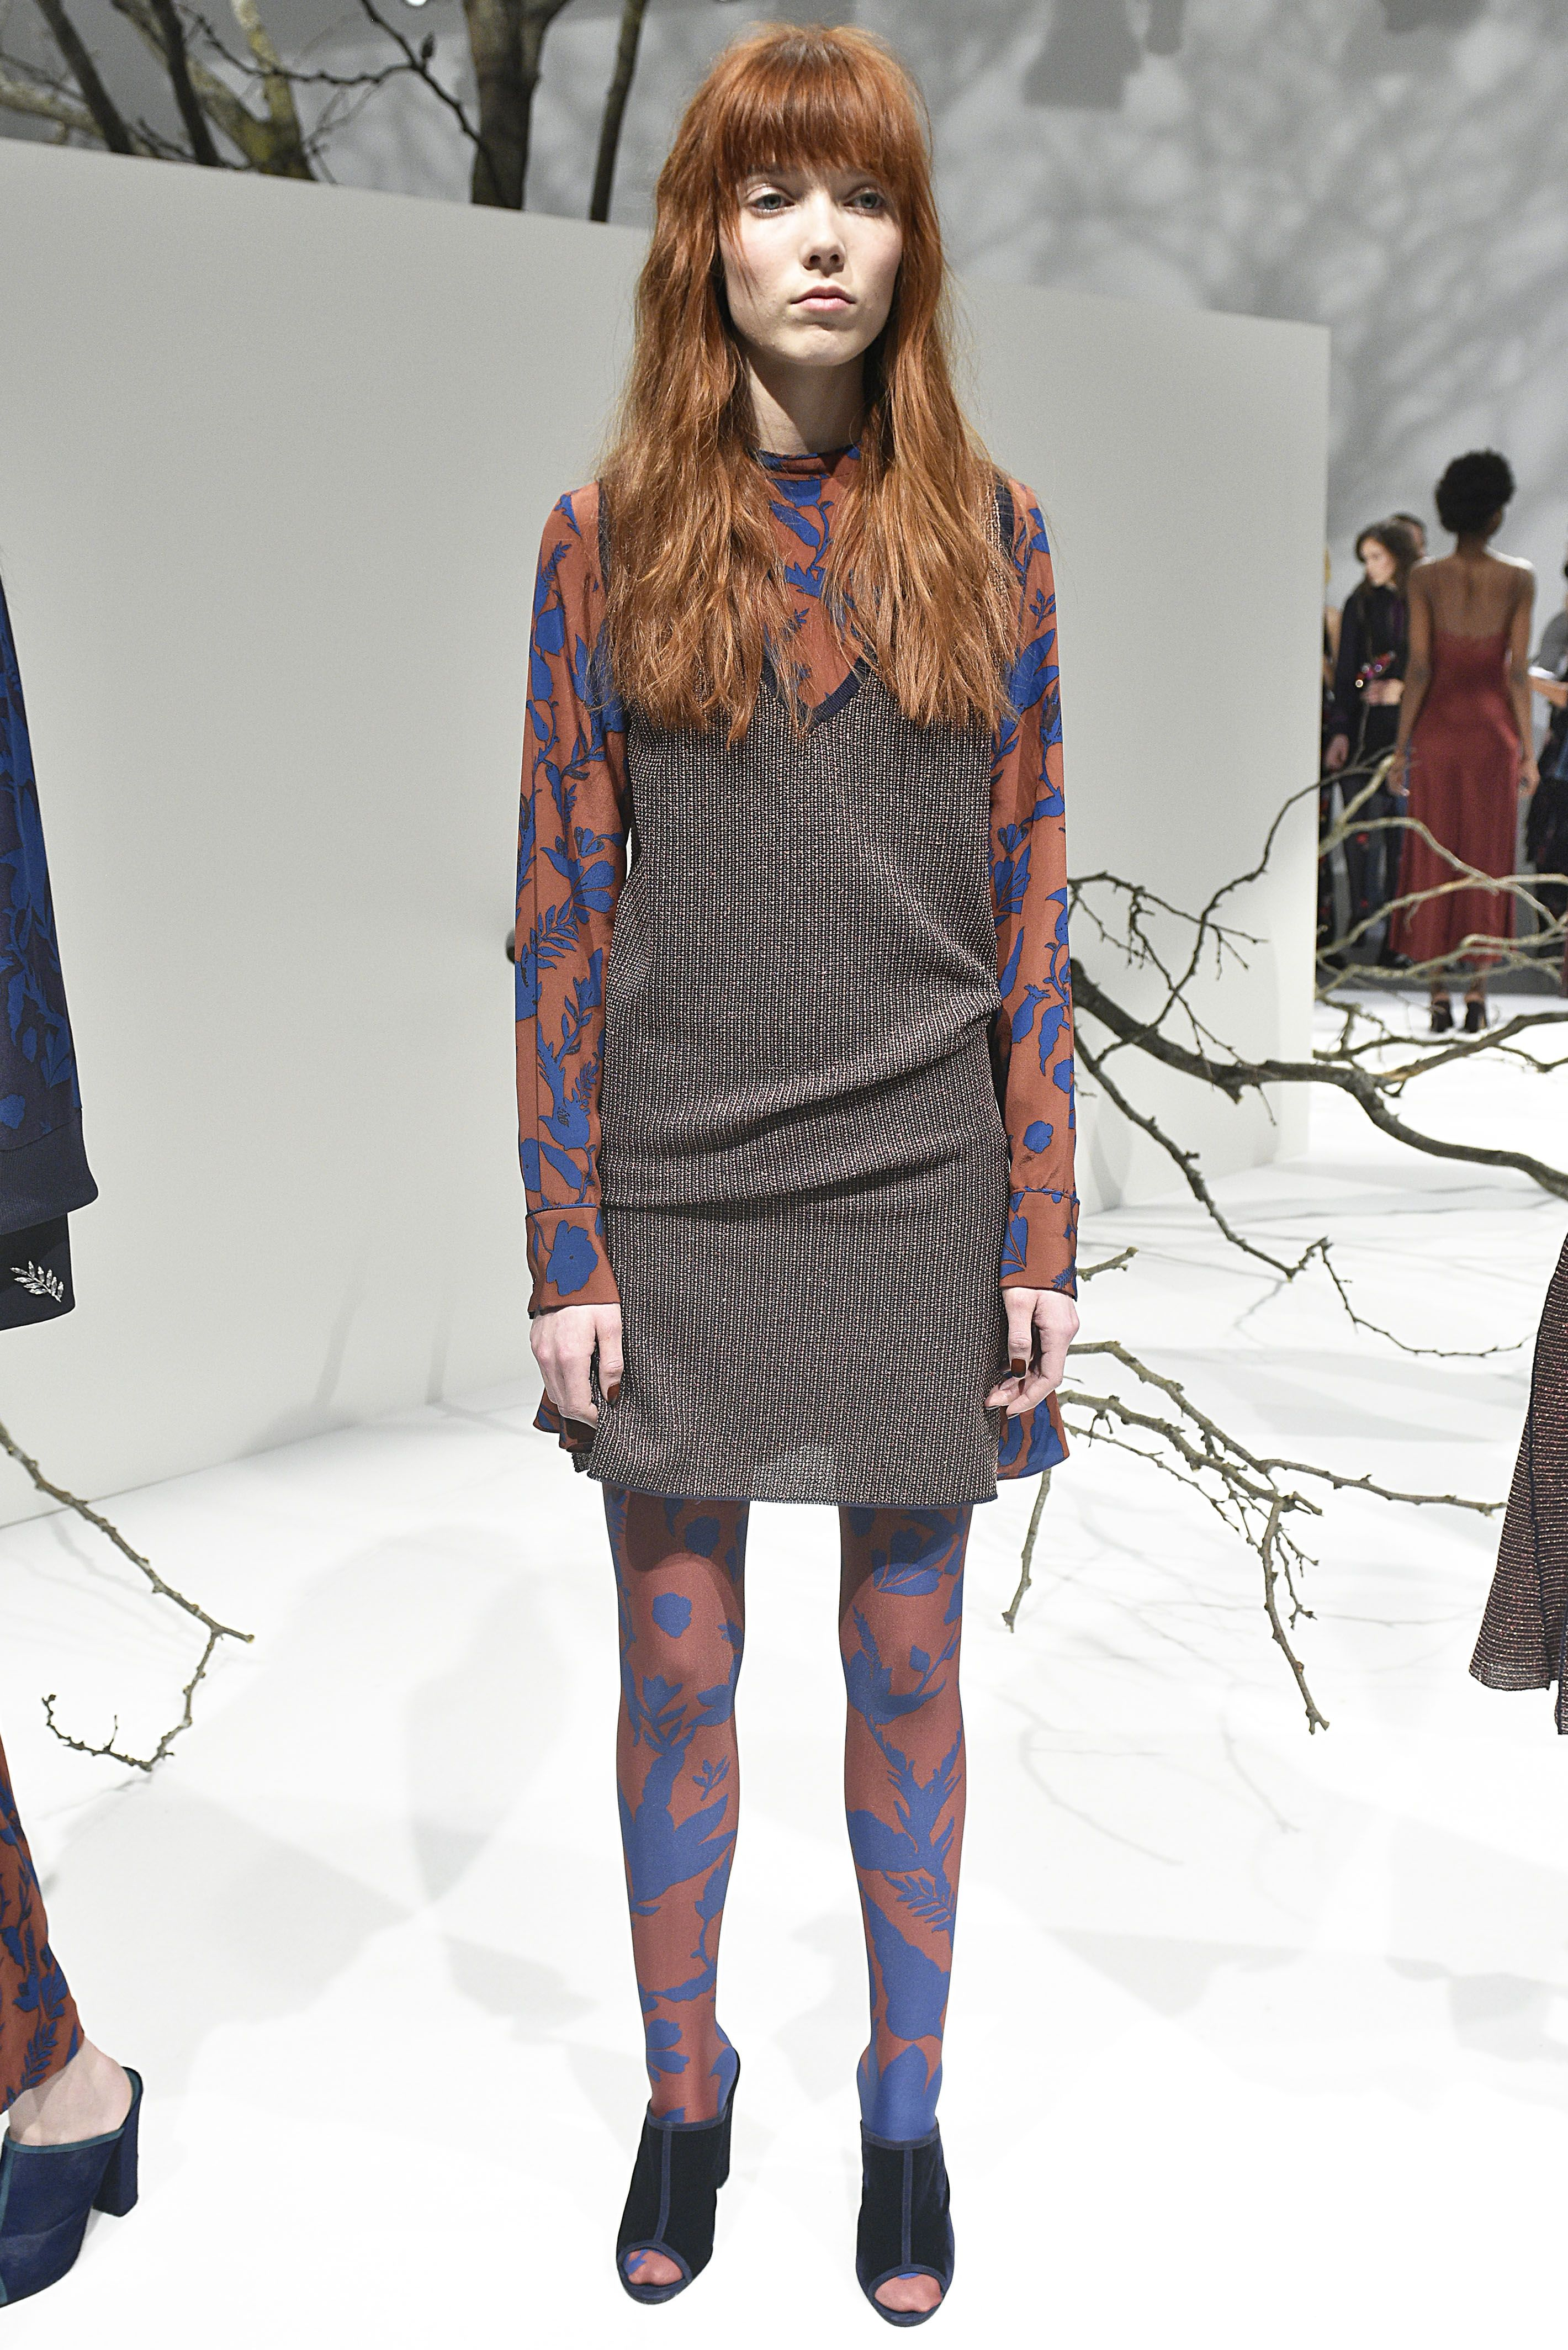 How to Ditch Your Tights and Still Stay Warm ThisSpring How to Ditch Your Tights and Still Stay Warm ThisSpring new images